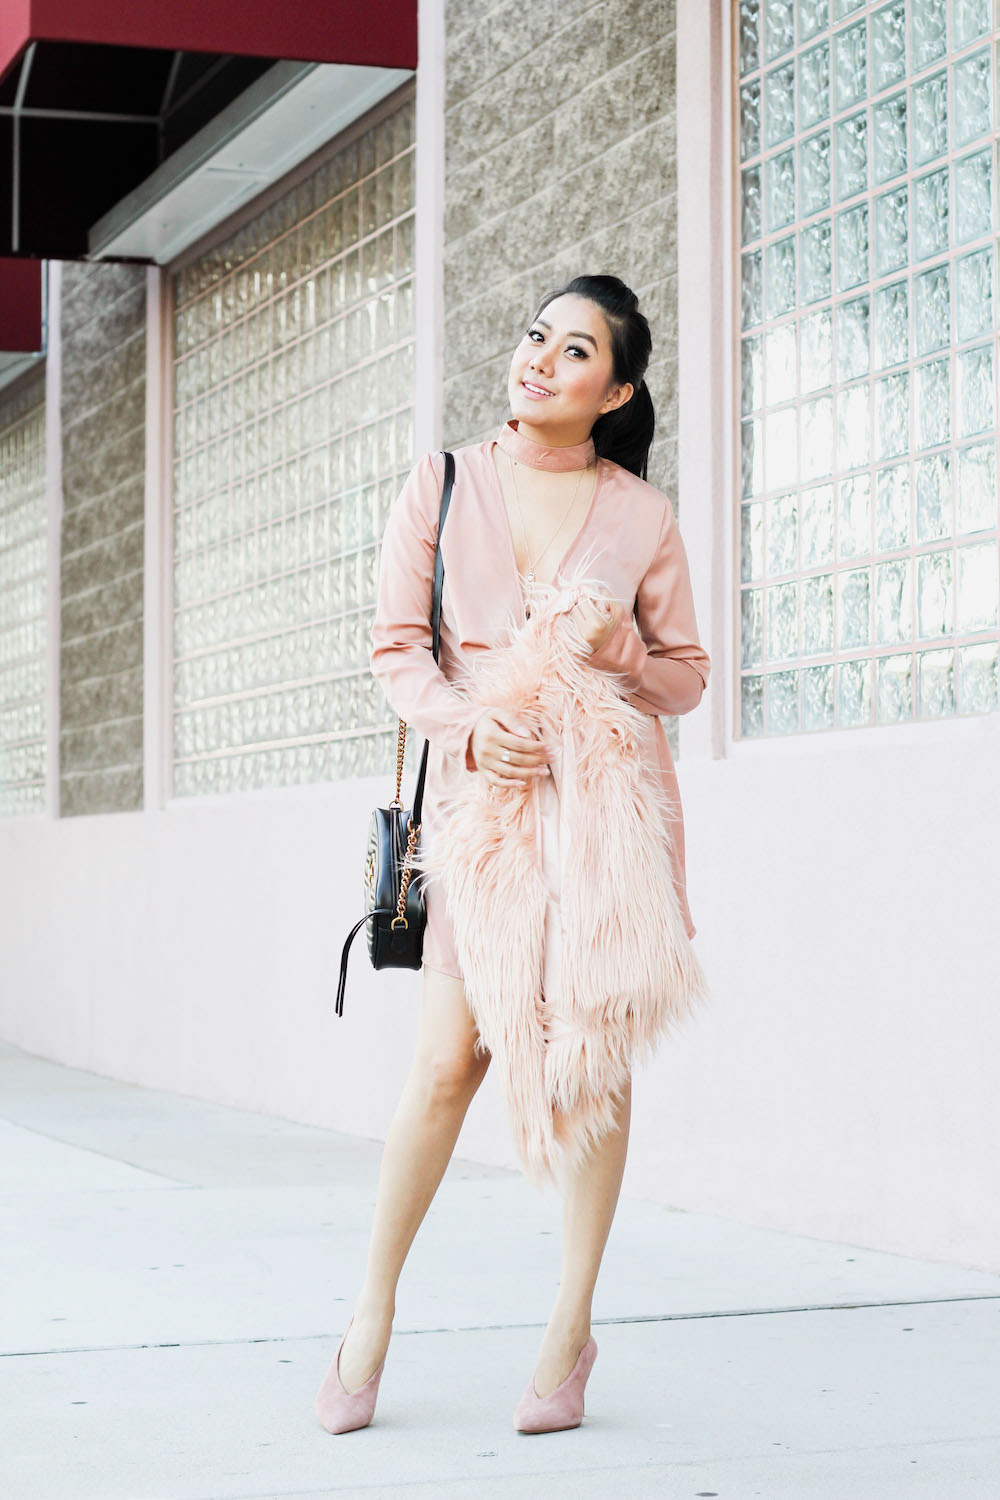 Fur Vest Outfit Idea Fall Autumn Outfit Engagement Ring Date night ideas